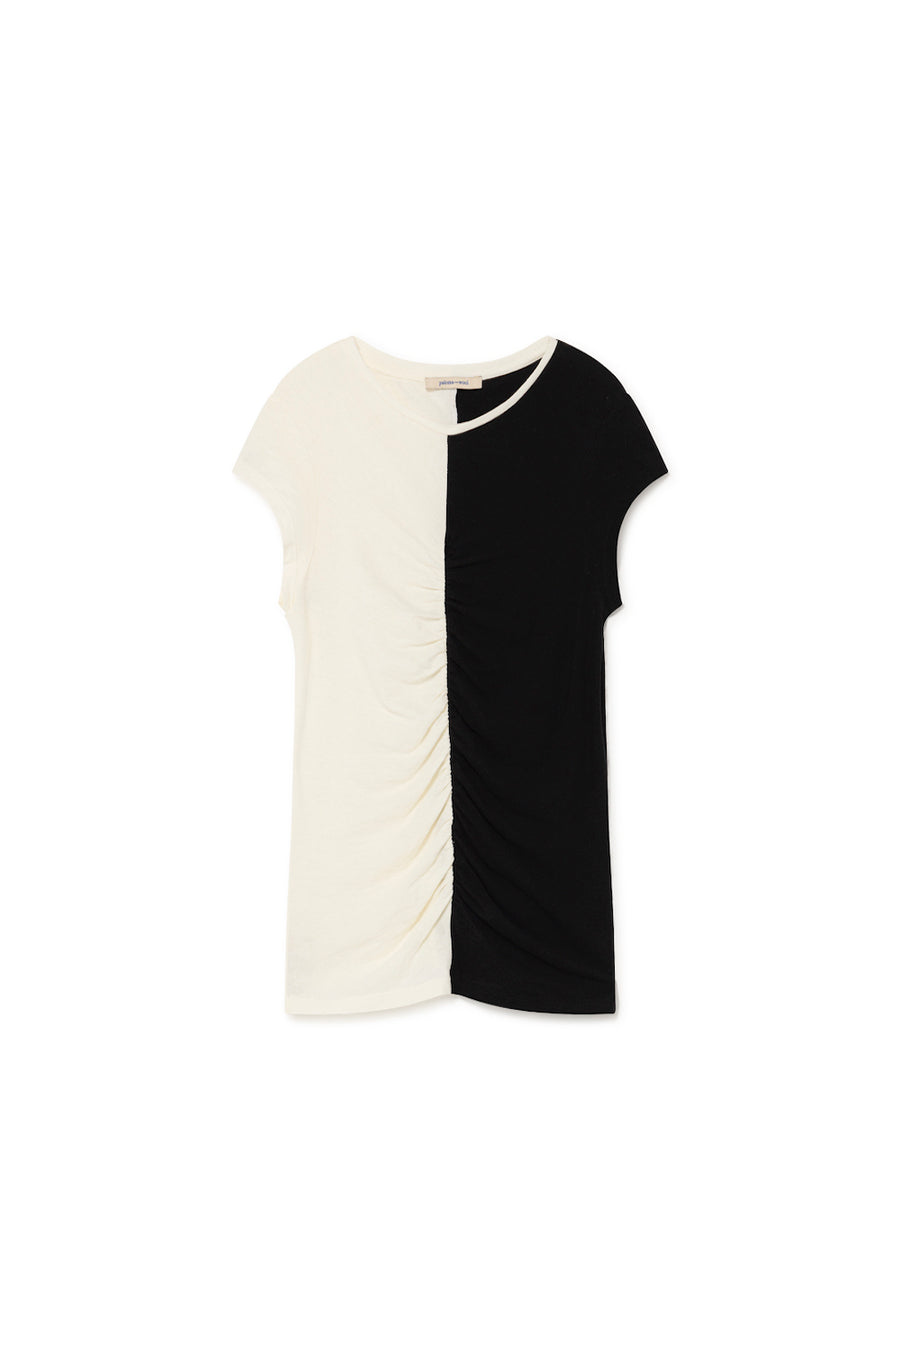 Dado Top | Black | PALOMA WOOL NZ | Tops NZ | Black Box Boutique Auckland | Womens Fashion NZ